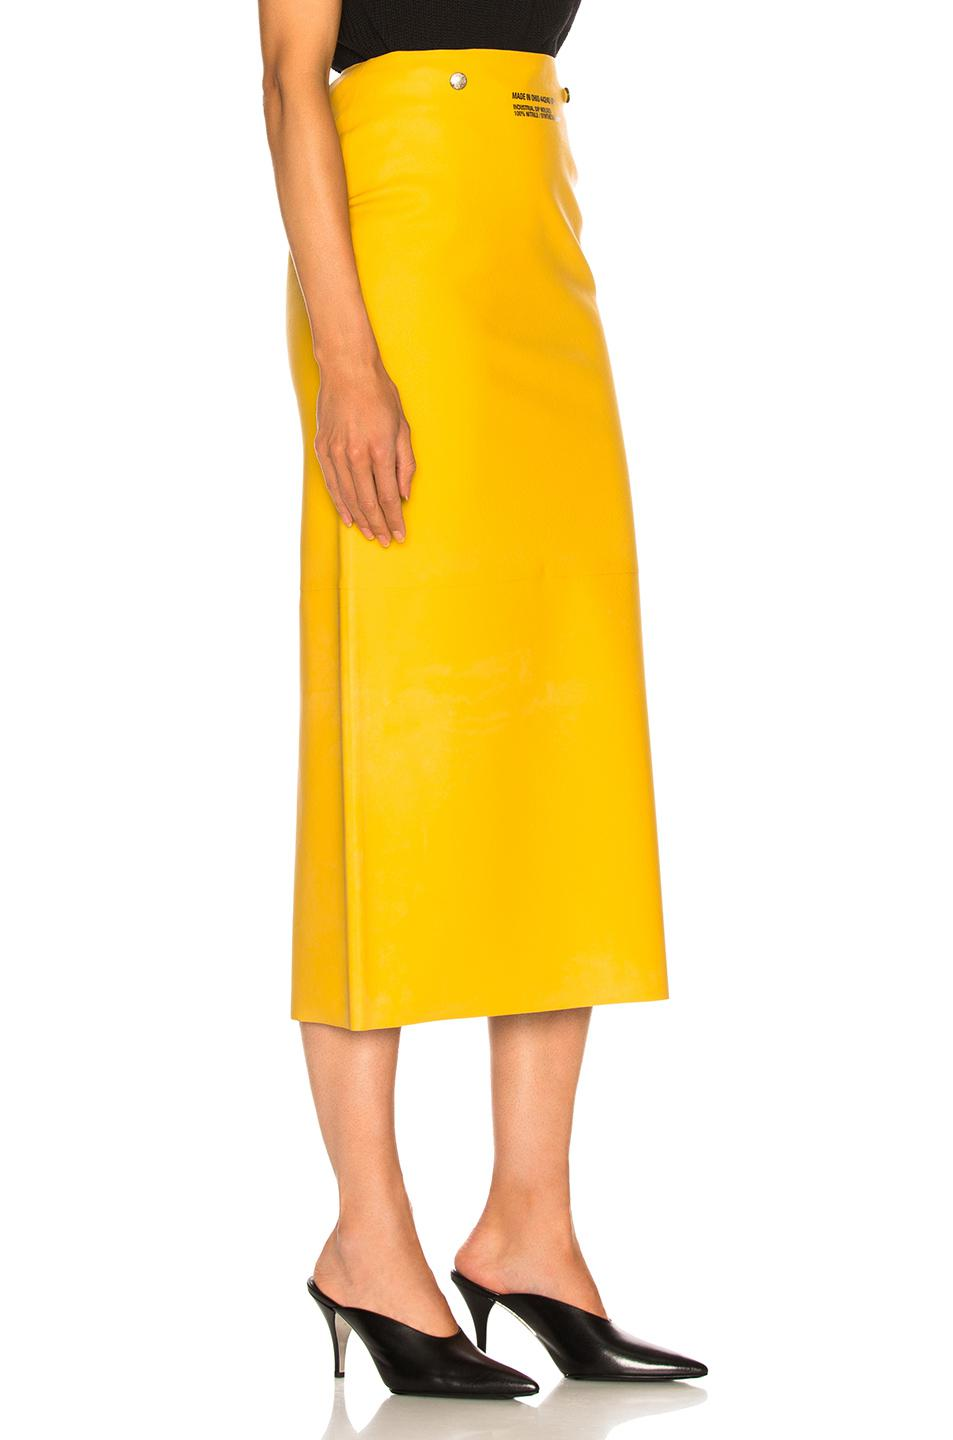 0a648685f CALVIN KLEIN 205W39NYC - Yellow Midi Skirt - Lyst. View fullscreen